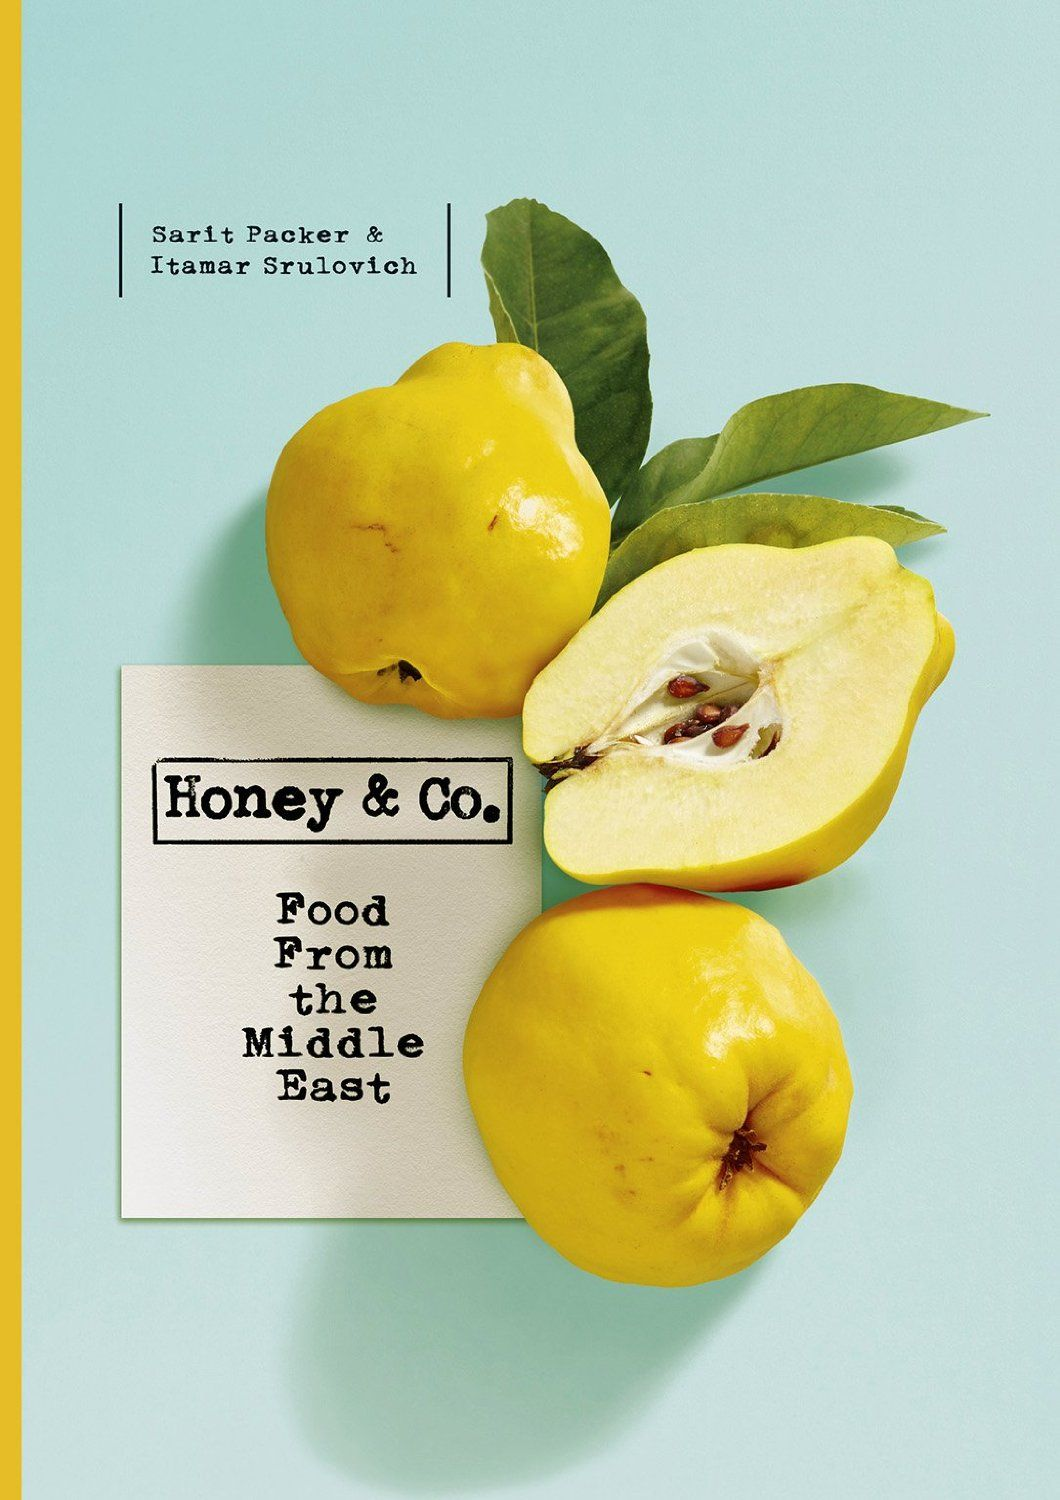 Honey co food from the middle east amazon itamar recipe book design honey co food from the middle east amazon forumfinder Images